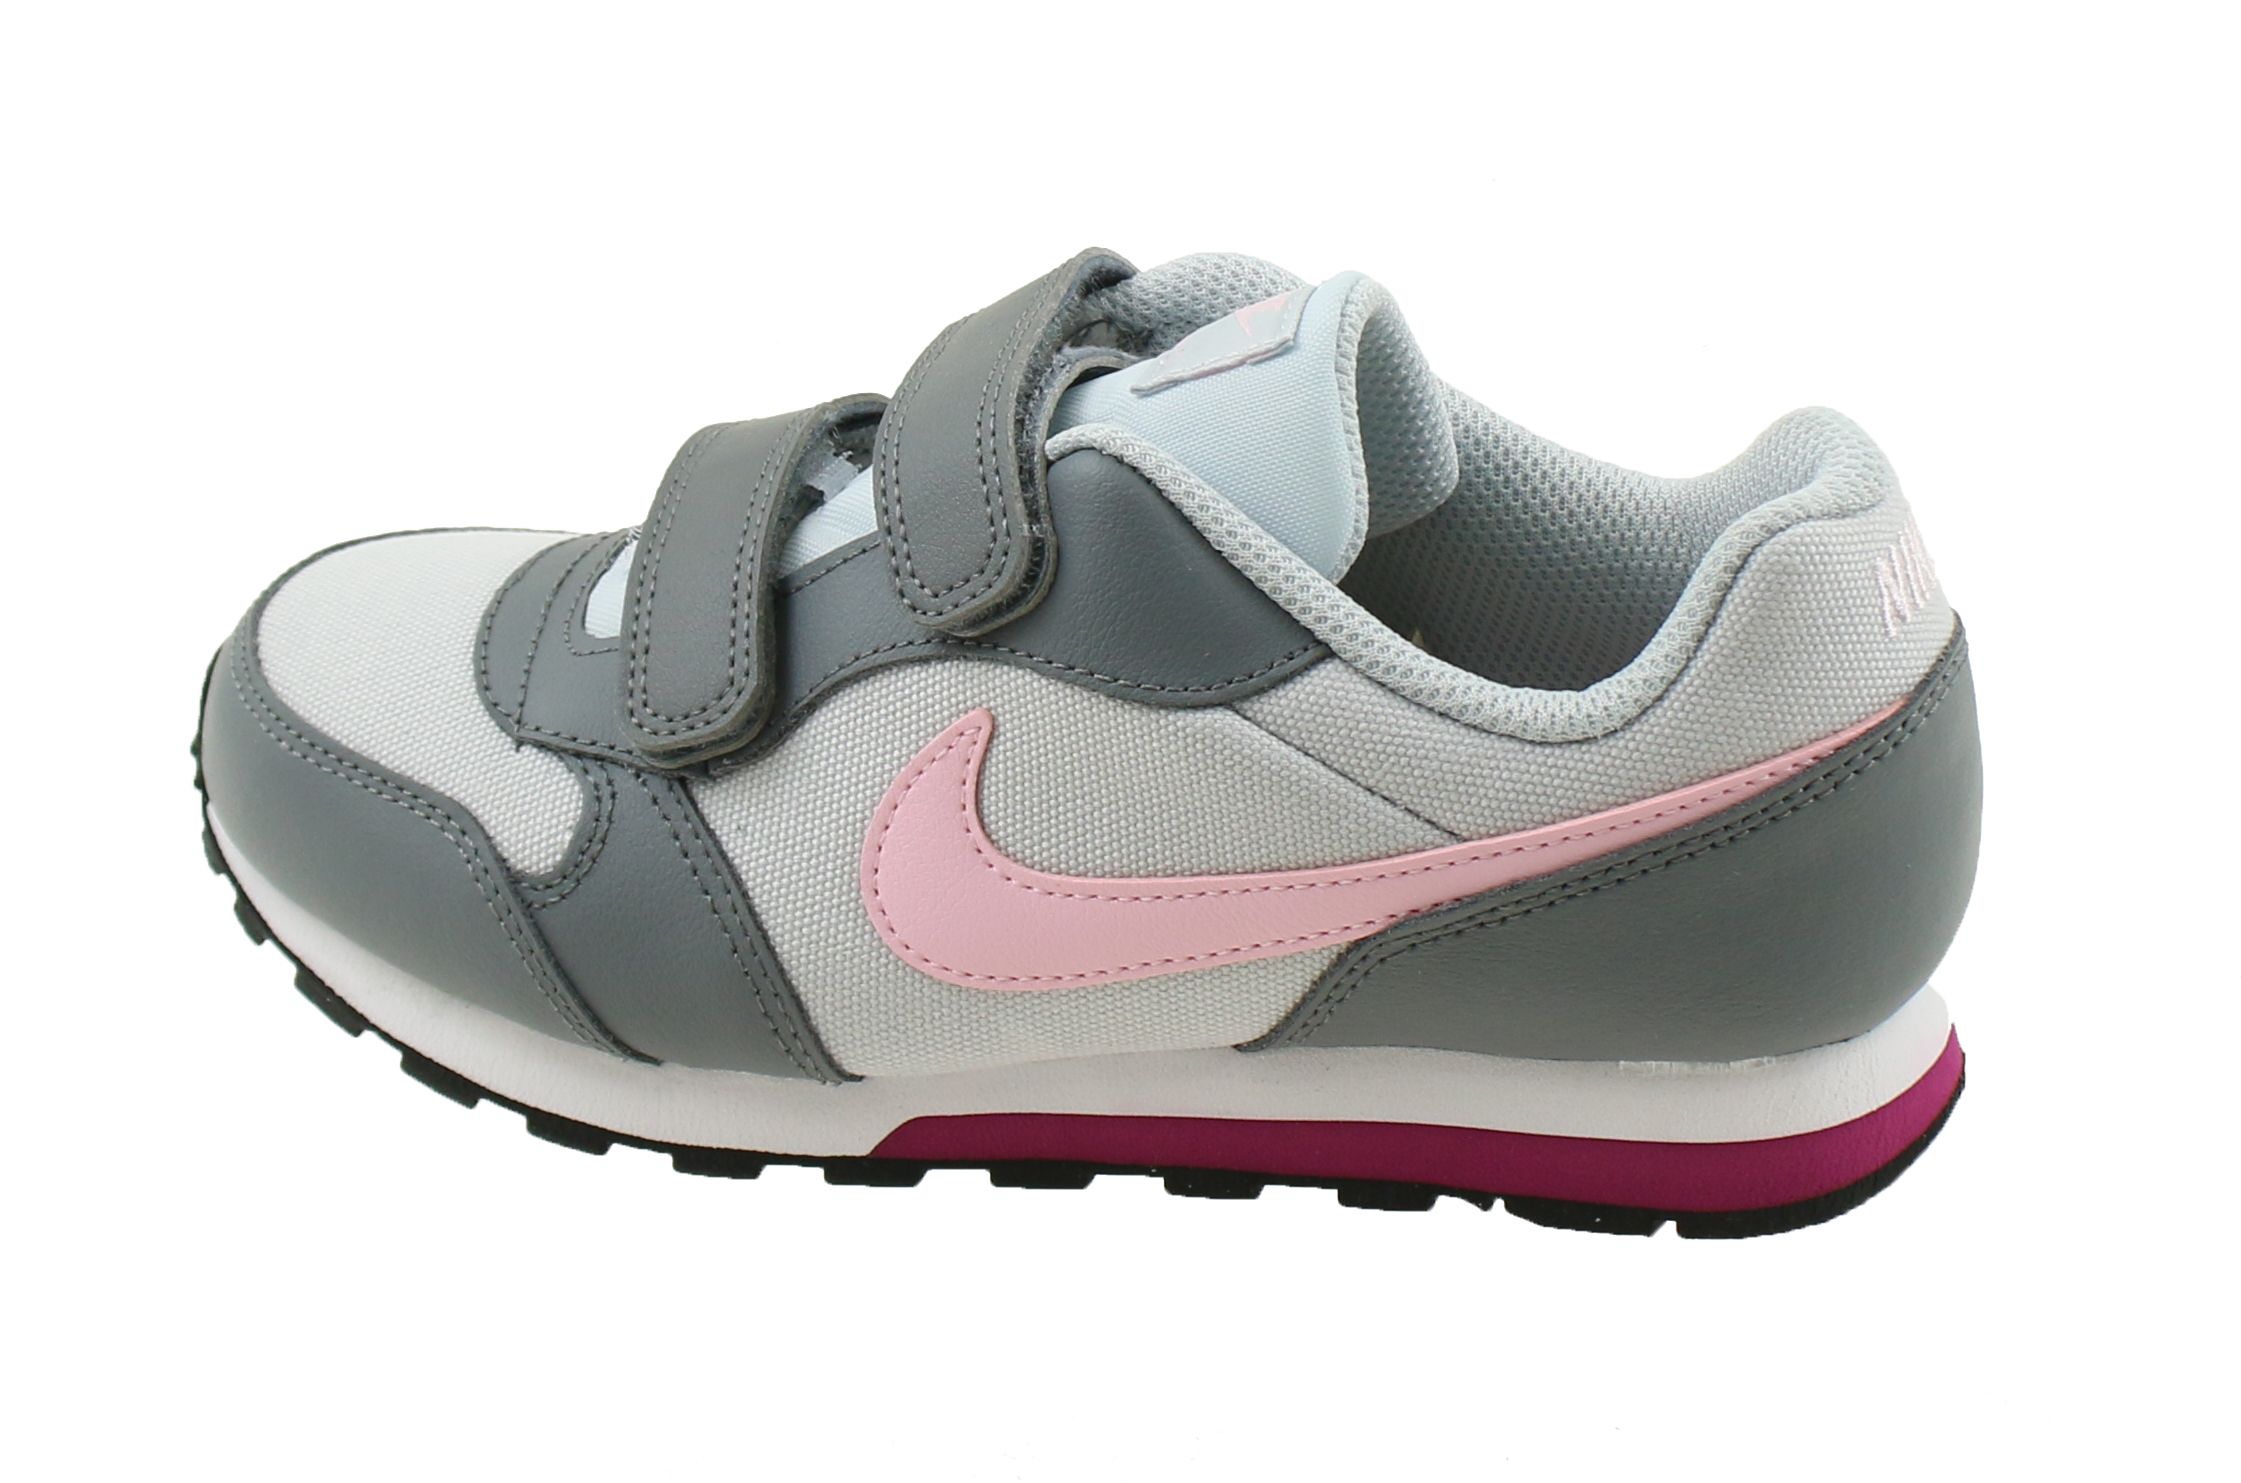 purchase cheap 91b0e 8a13c Nike MD Runner 2 (PS) Junior. 807320 017 PURE PLATINUM PINK FOAM -C.  Product afbeelding Product afbeelding Product afbeelding Product afbeelding